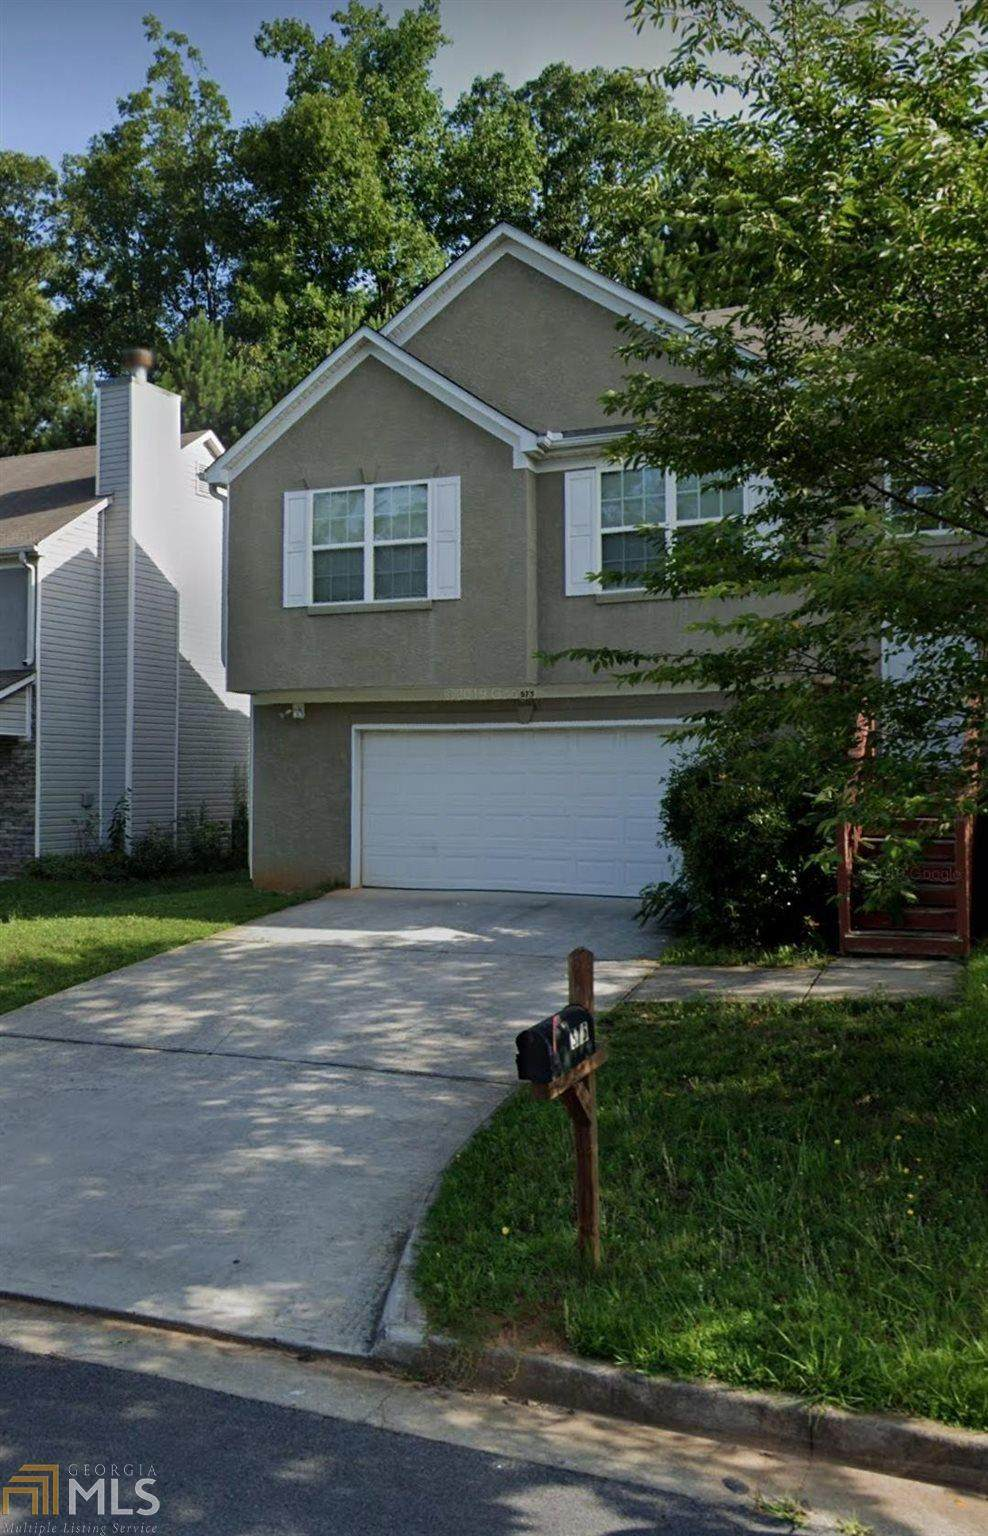 575 Sycamore Dr - Photo 1